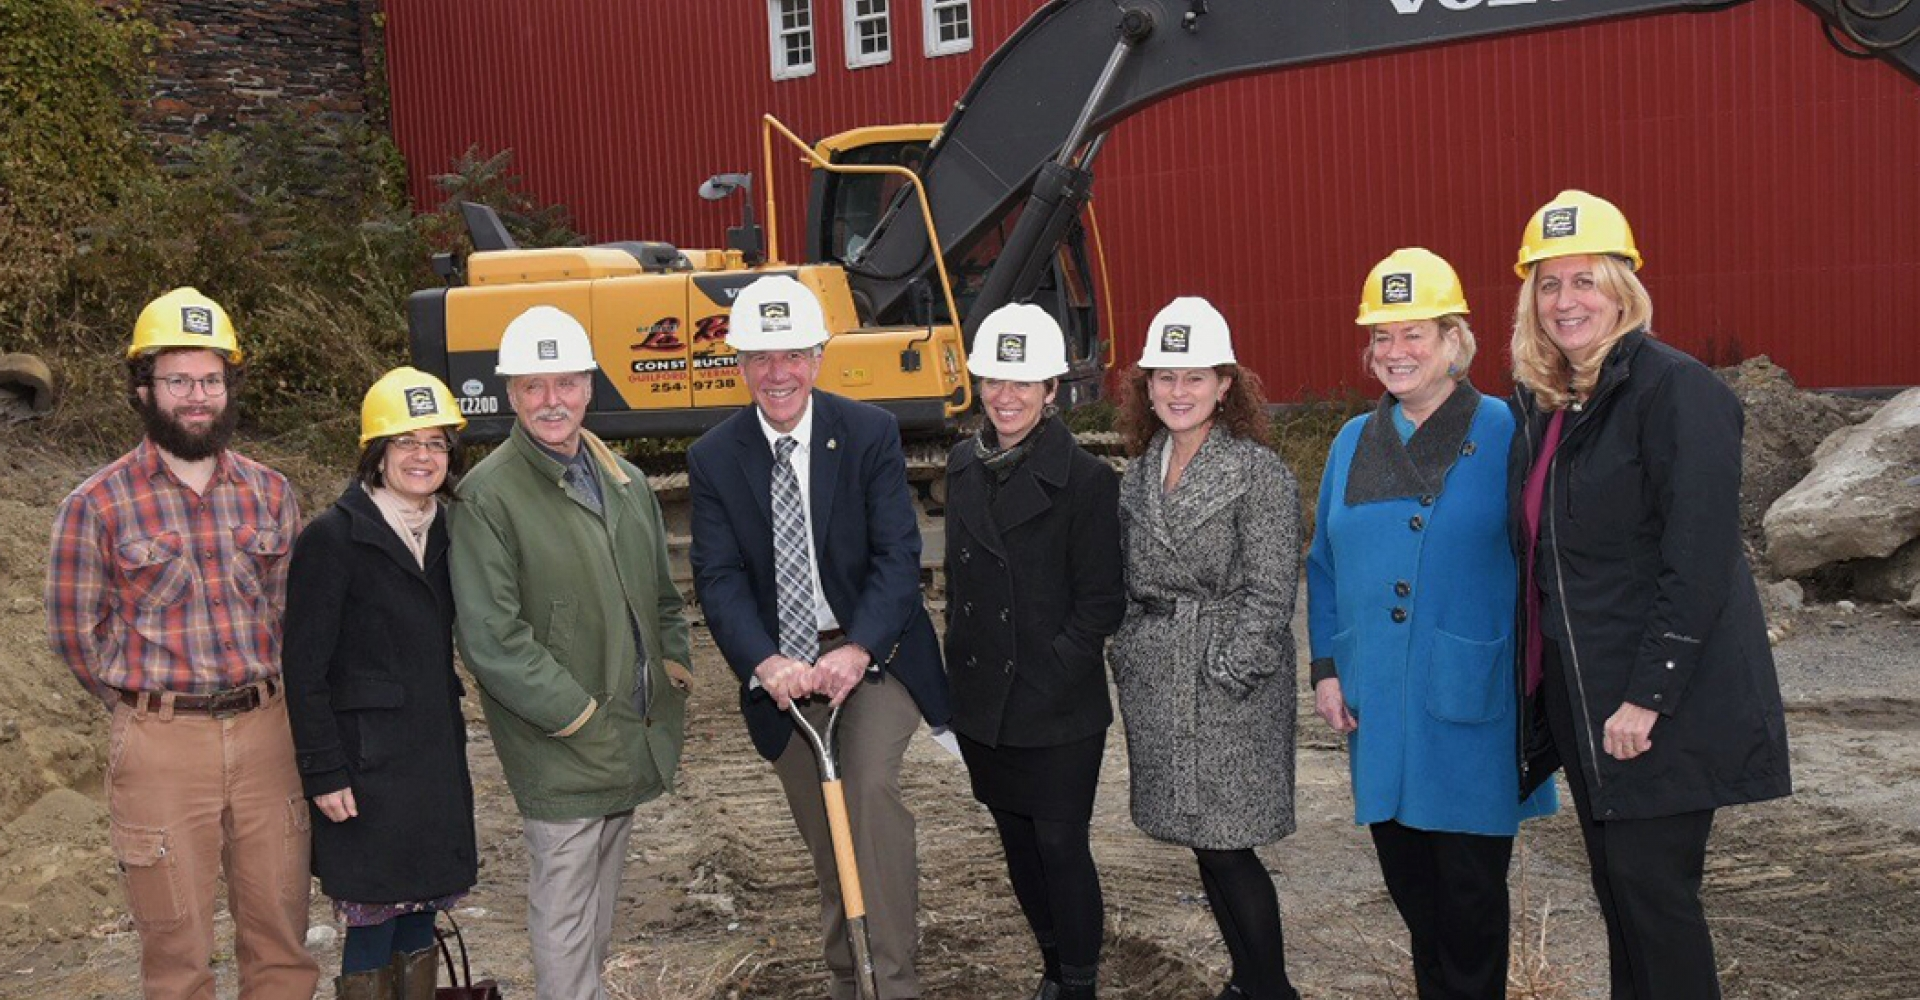 Pete Paggi,Ground Breaking for the Snow Block in downtown Brattleboro. L to R: Becca Balint, Gus Seelig, Gov. Scott, Elizabeth Bridgewater. Dana Harris photo